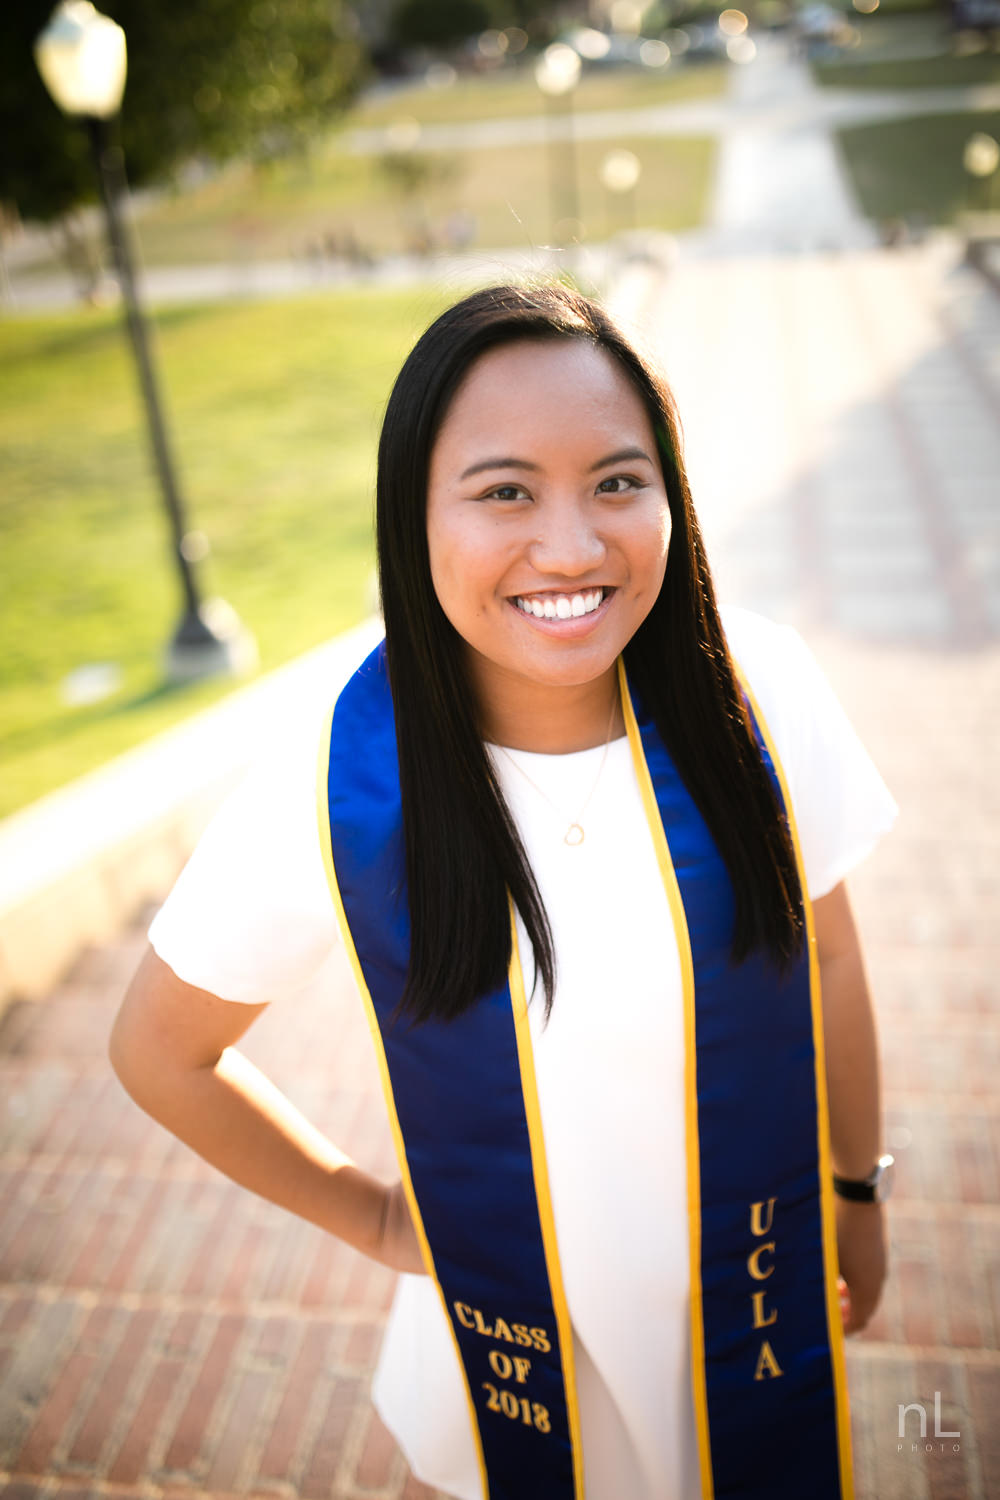 los-angeles-ucla-senior-graduation-portraits-7177.jpg